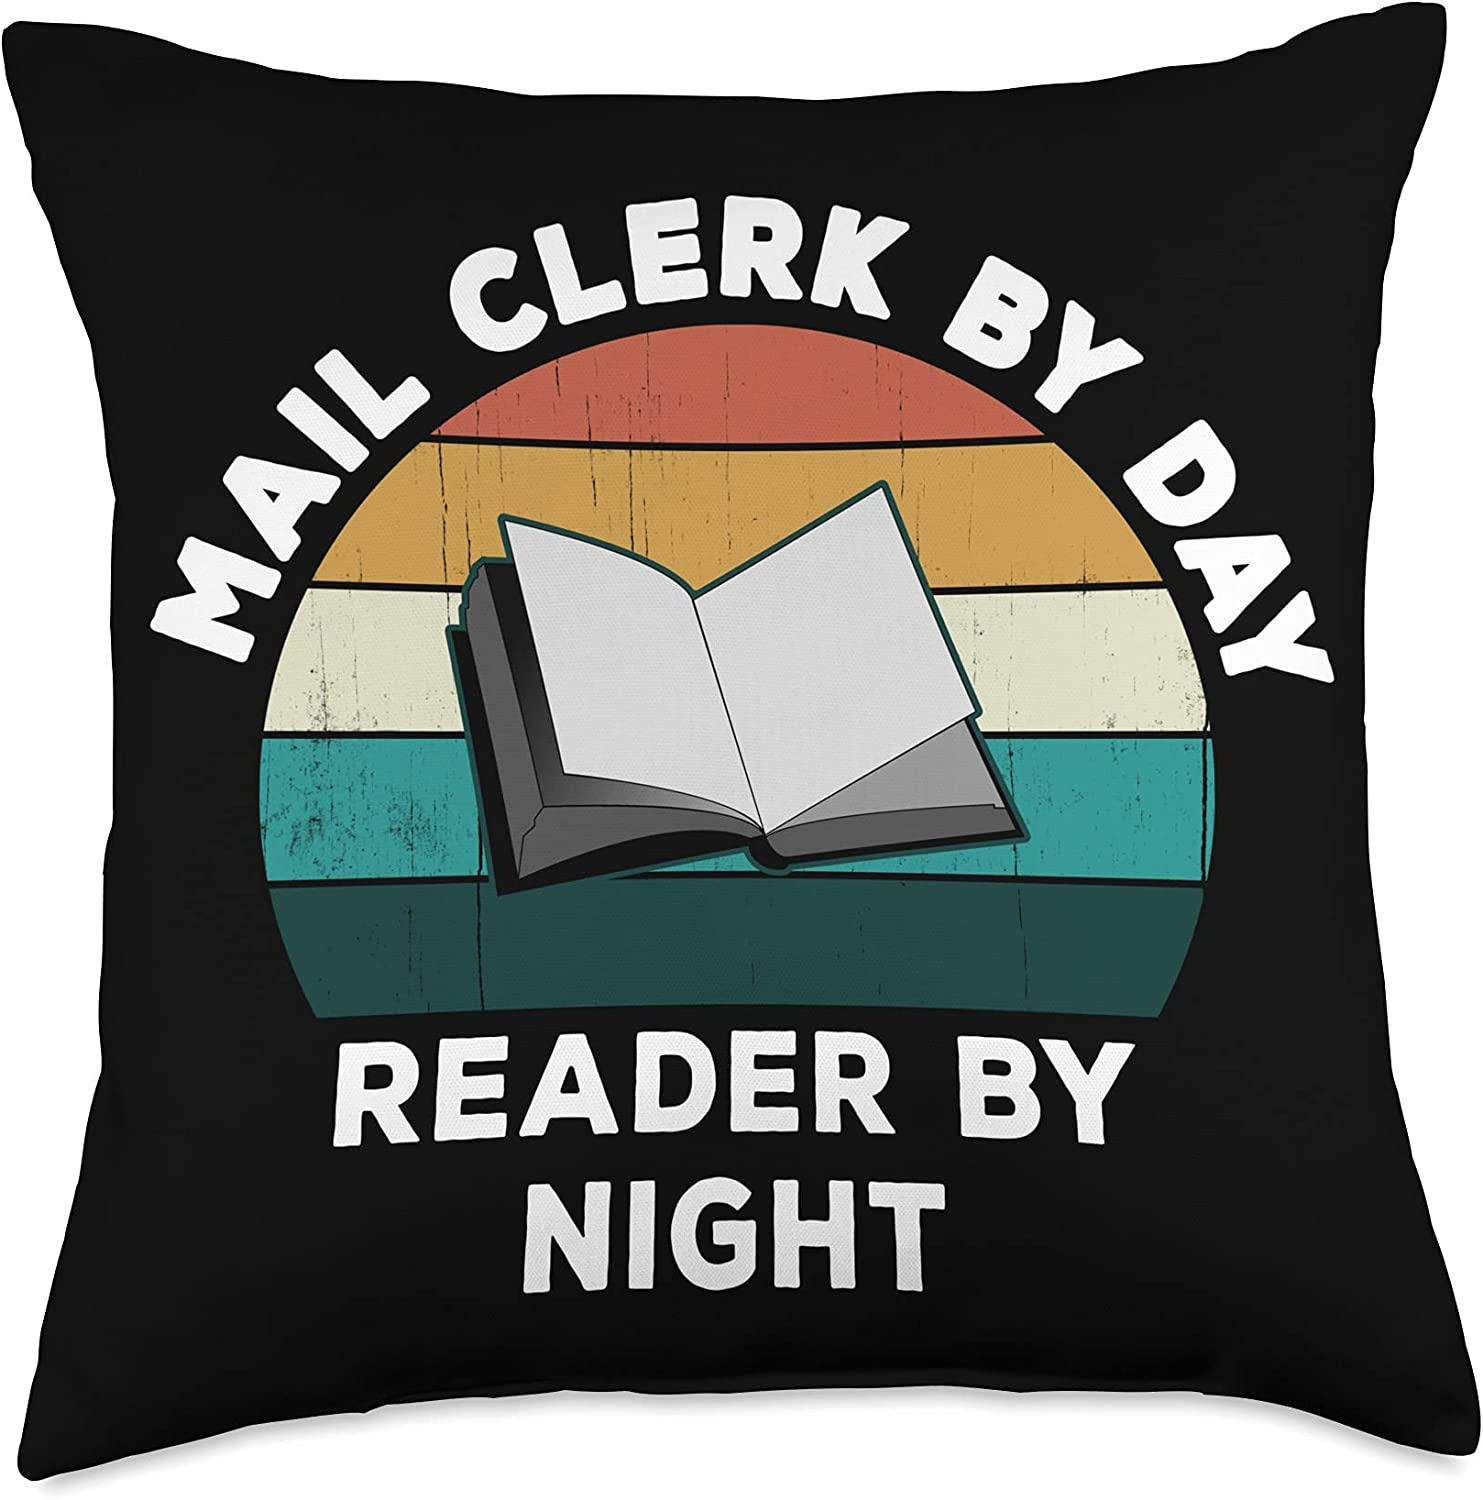 Funny Memphis Mall Mail We OFFer at cheap prices Clerk Reader Joke Day by Job